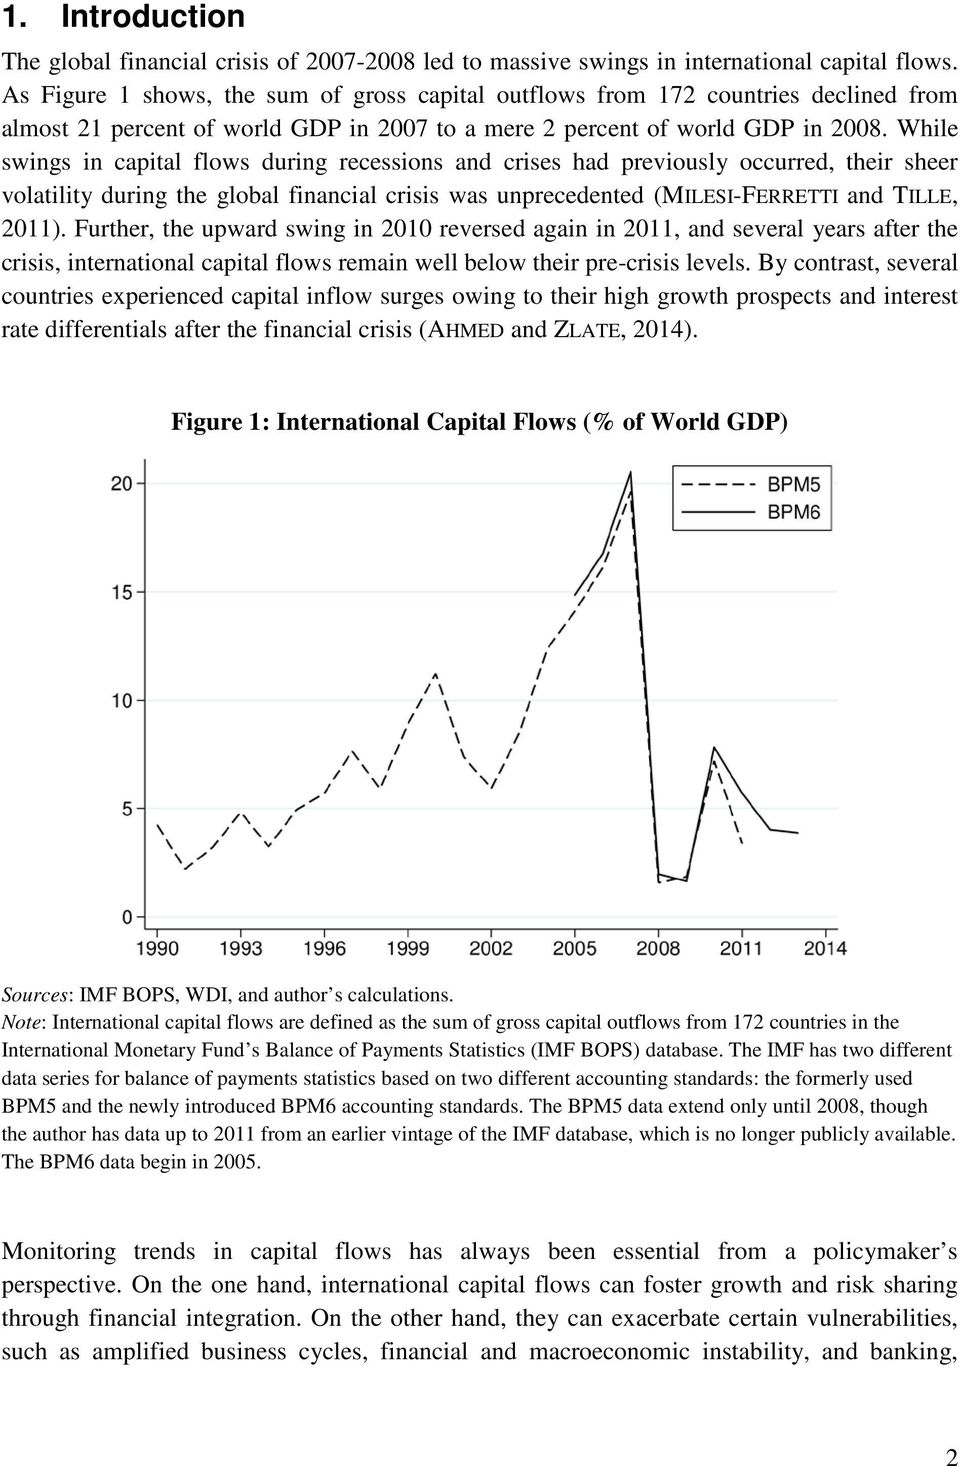 While swings in capital flows during recessions and crises had previously occurred, their sheer volatility during the global financial crisis was unprecedented (MILESI-FERRETTI and TILLE, 2011).